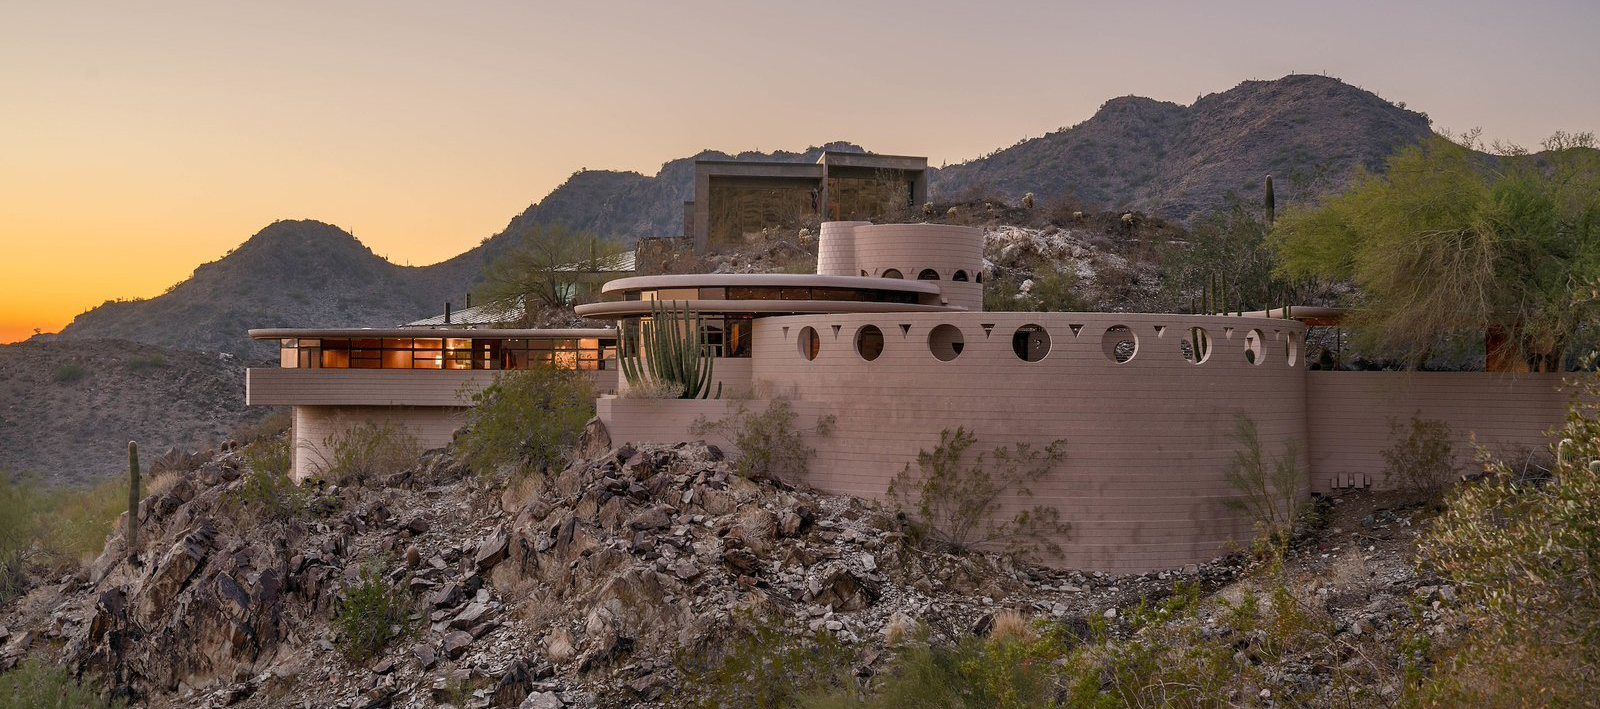 'Norman Lyker Home' by Frank Lloyd Wright. Image courtesy of The Agency